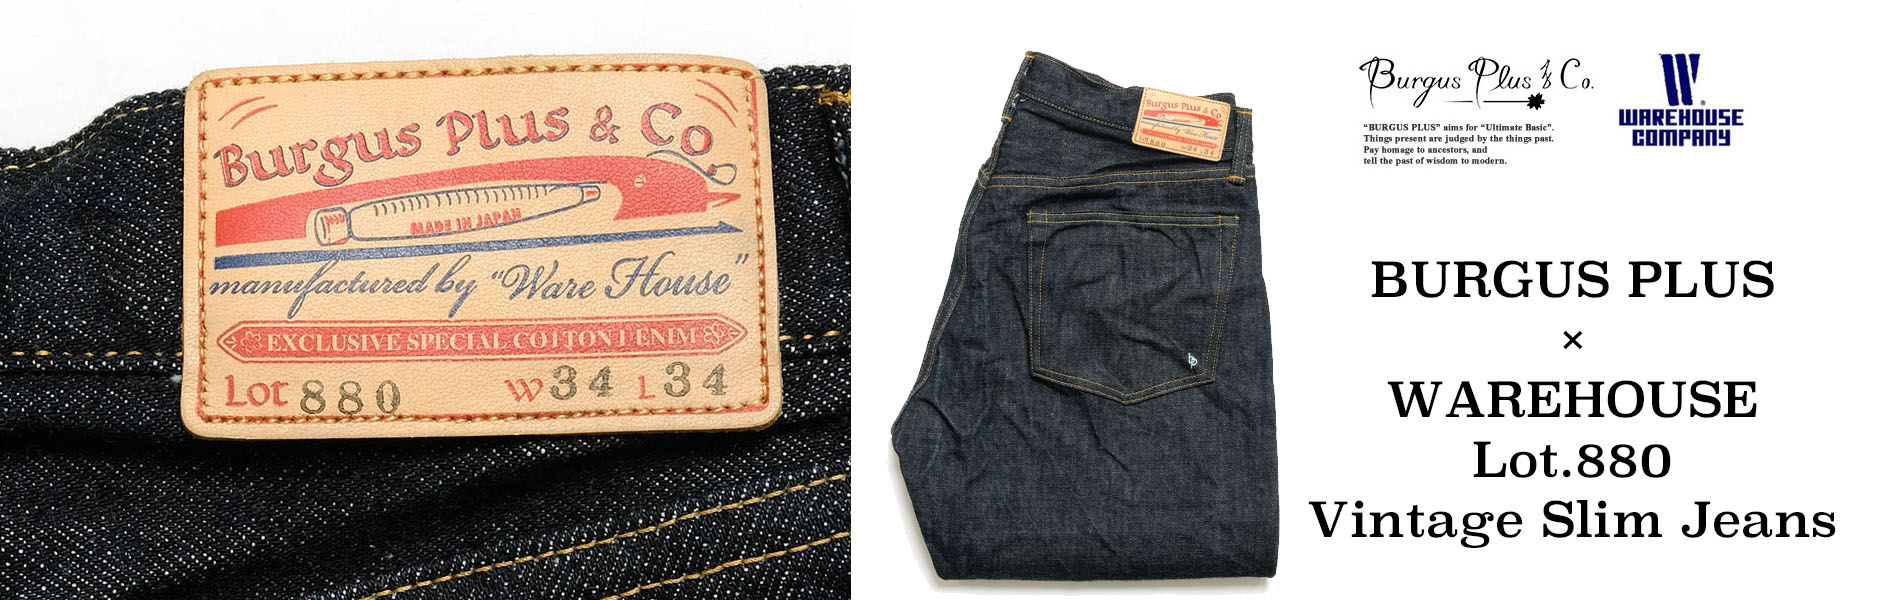 BURGUS PLUS × WAREHOUSE Vintage Slim JeansLot.880